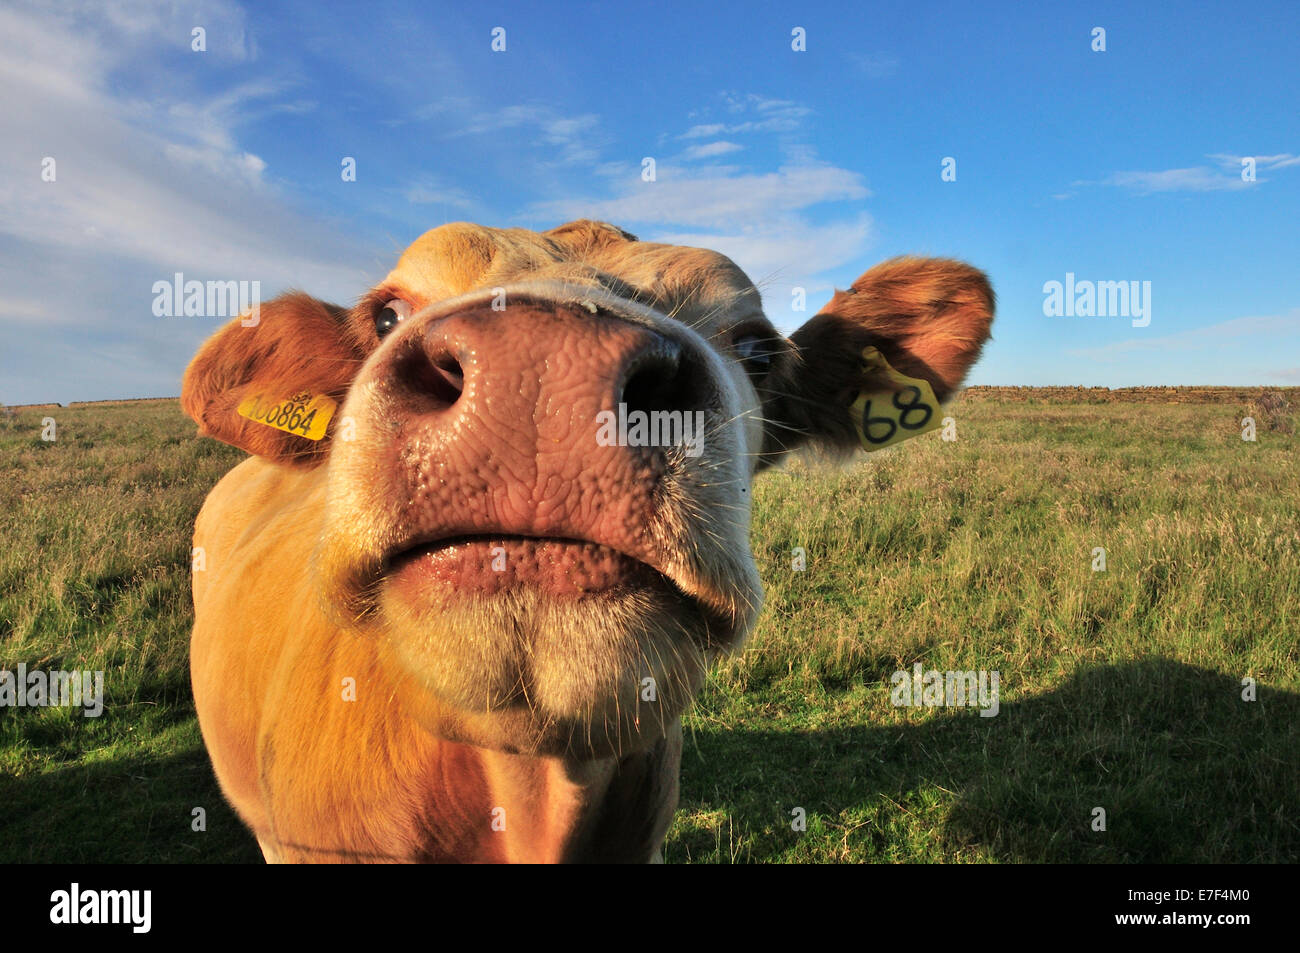 Curious cow near Birsay, Mainland, Orkney, Scotland, United Kingdom - Stock Image